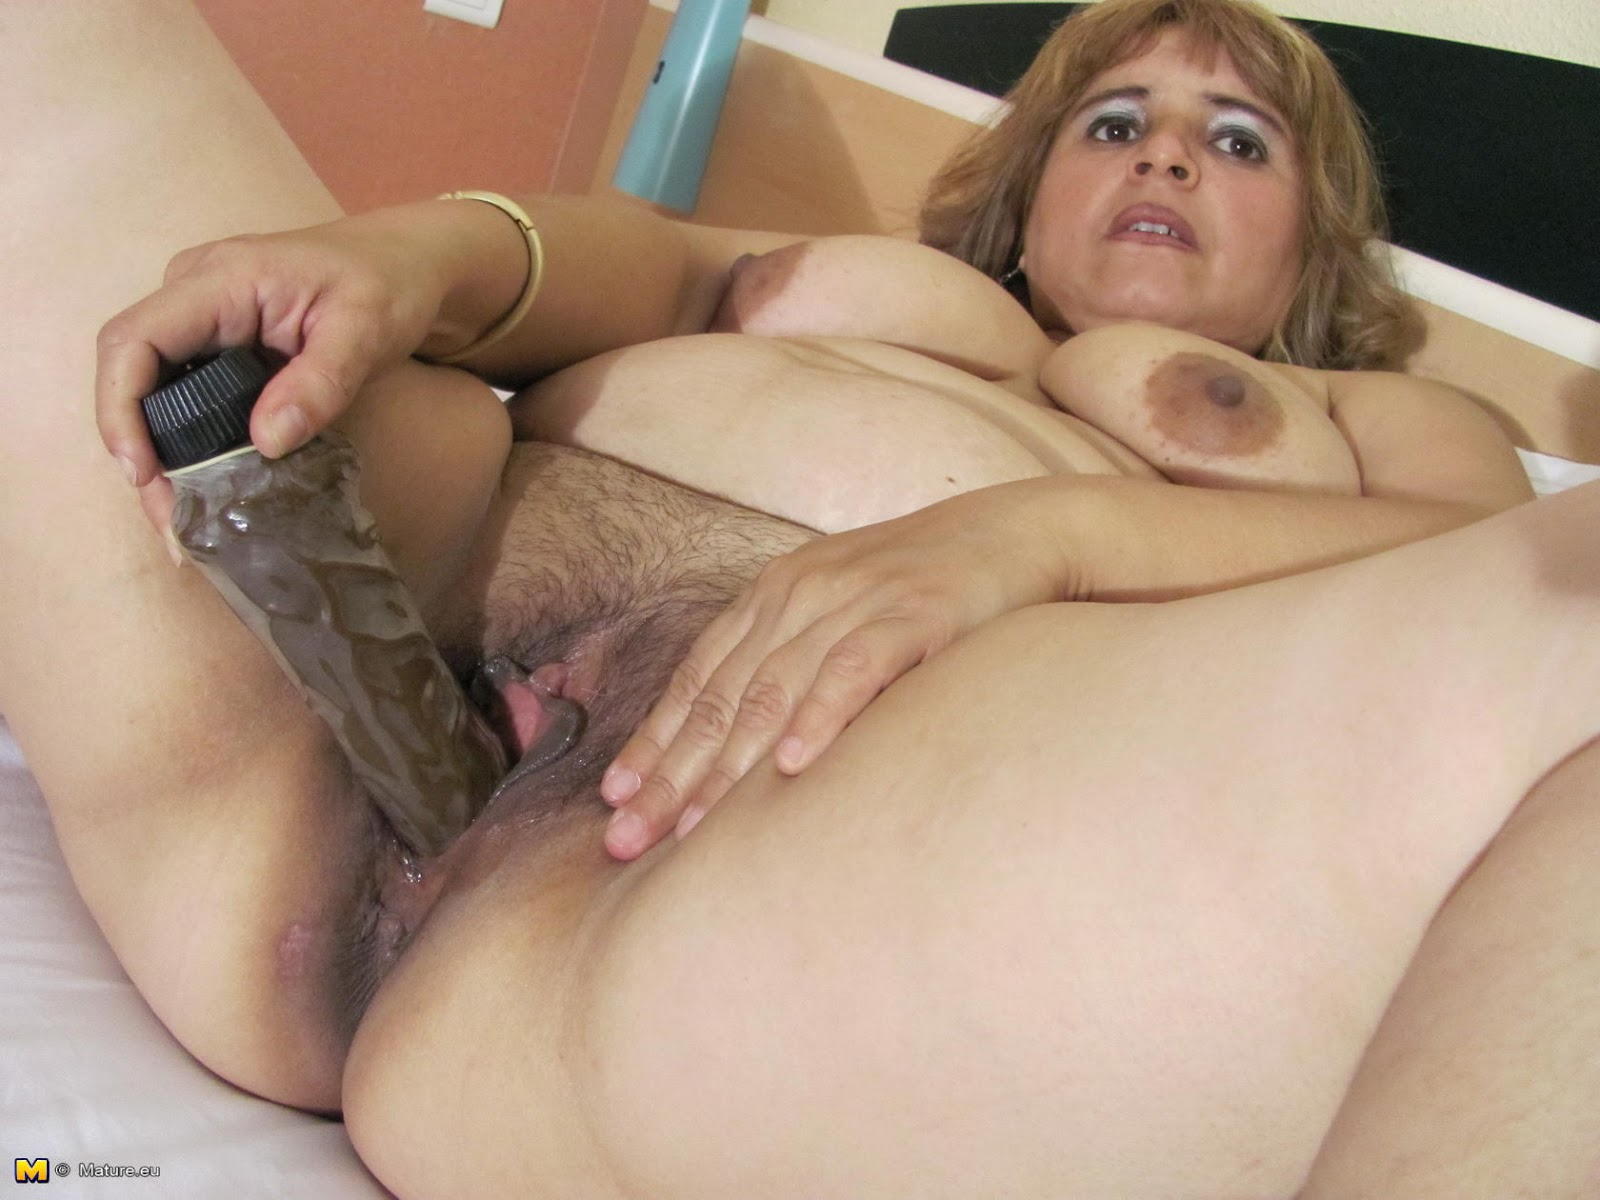 50 yr old women from milwaukee wi in porn videos